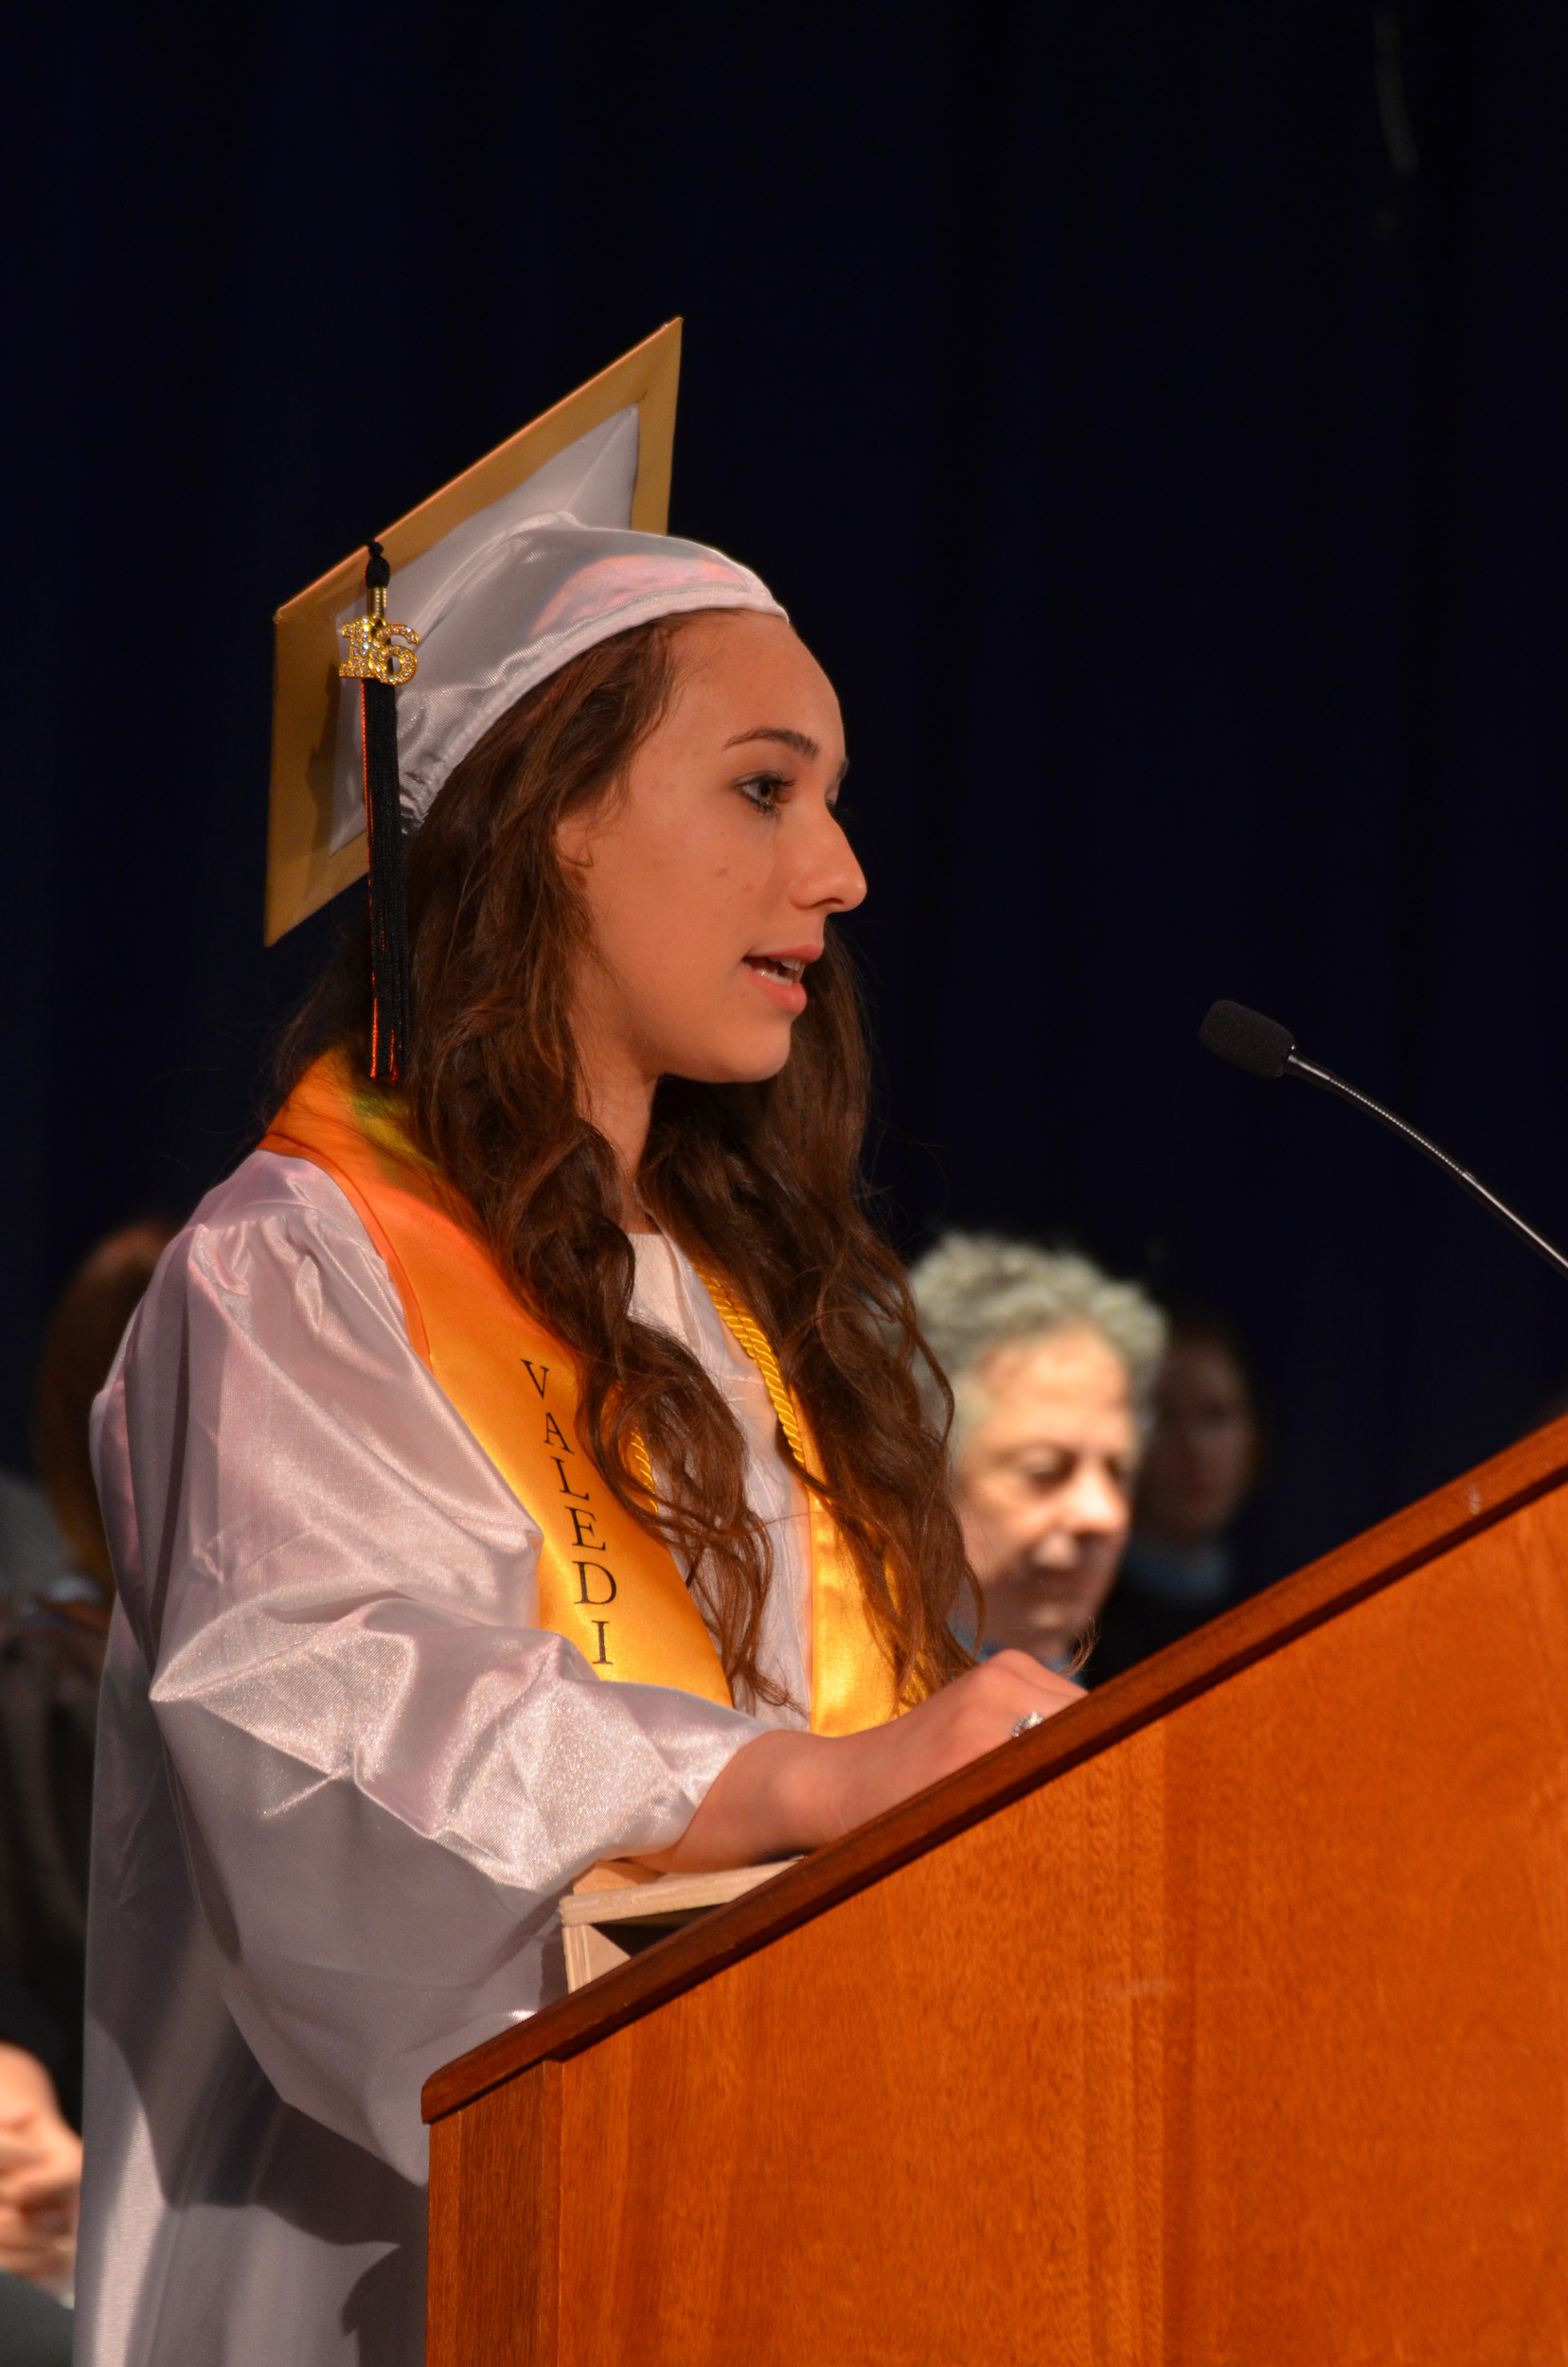 Valedictorian Sarina A Gonzalez gave an inspirational speech